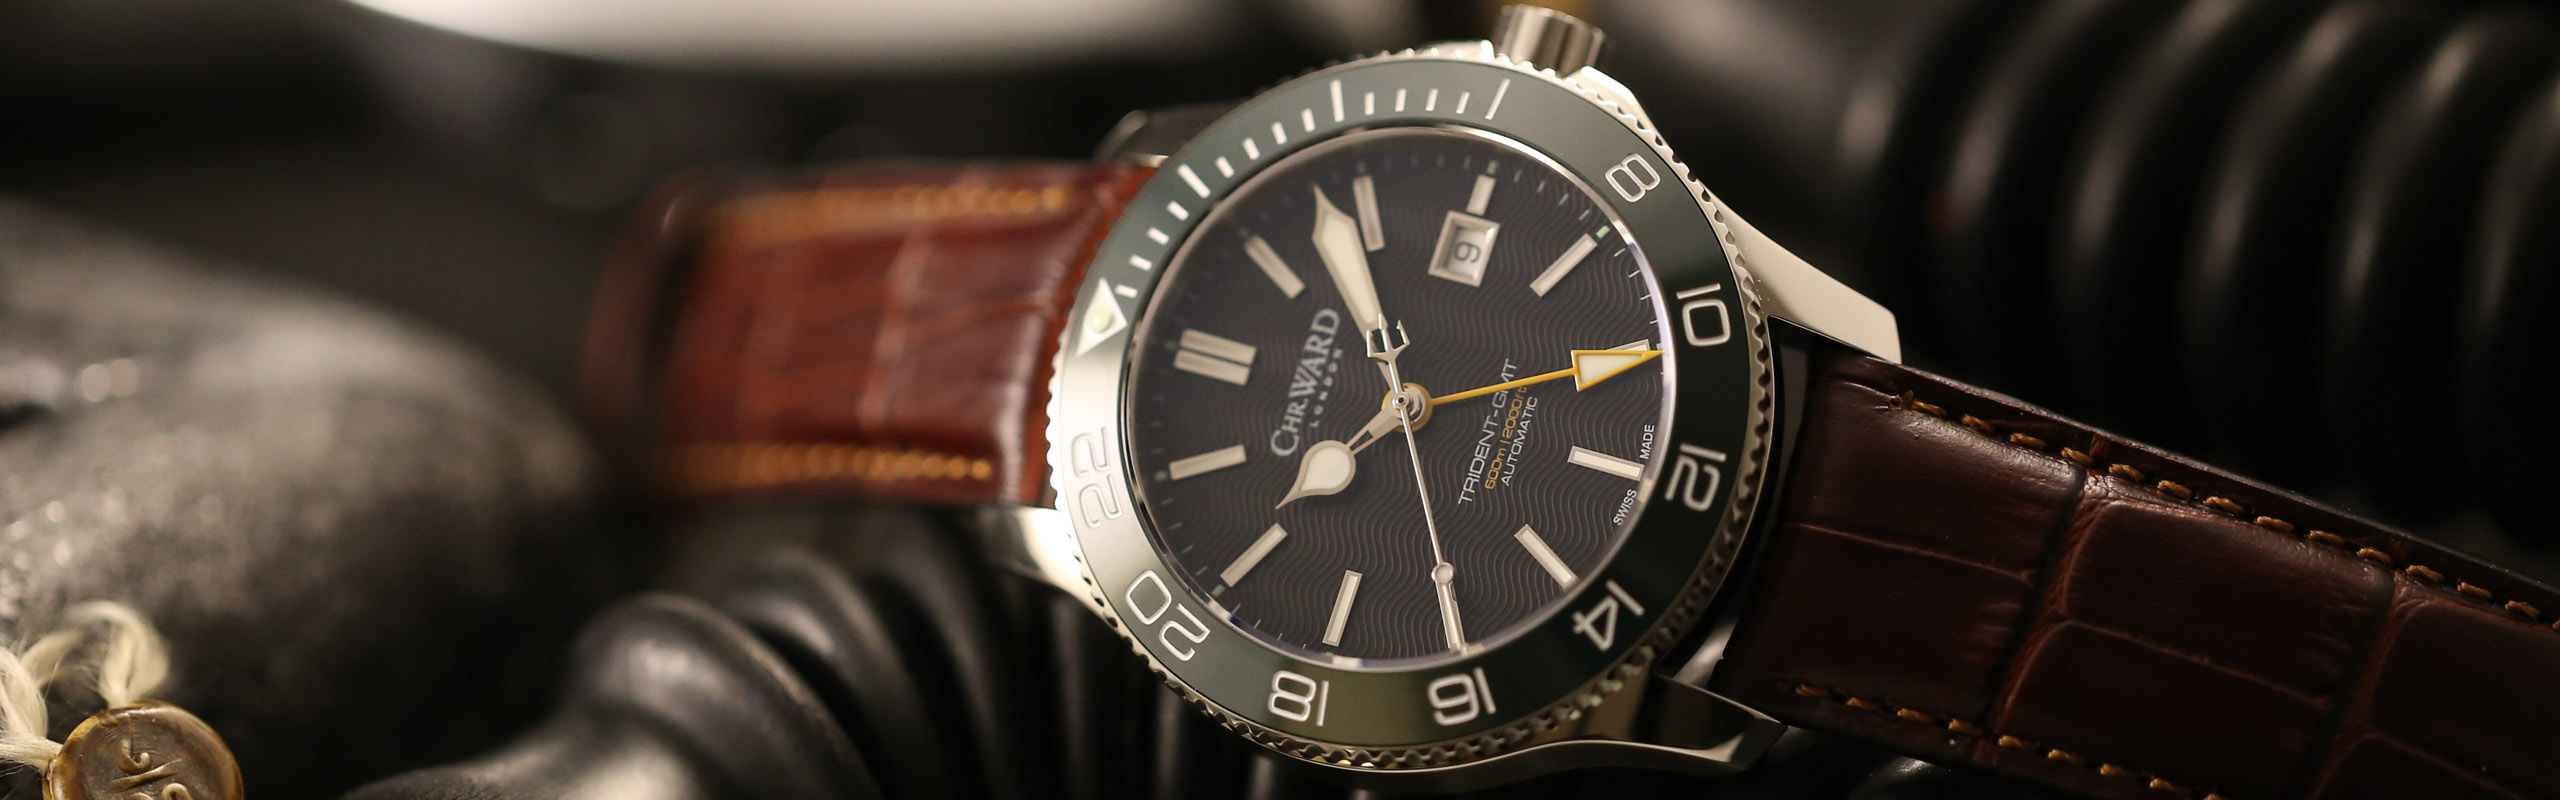 review christopher ward trident dive into watches. Black Bedroom Furniture Sets. Home Design Ideas